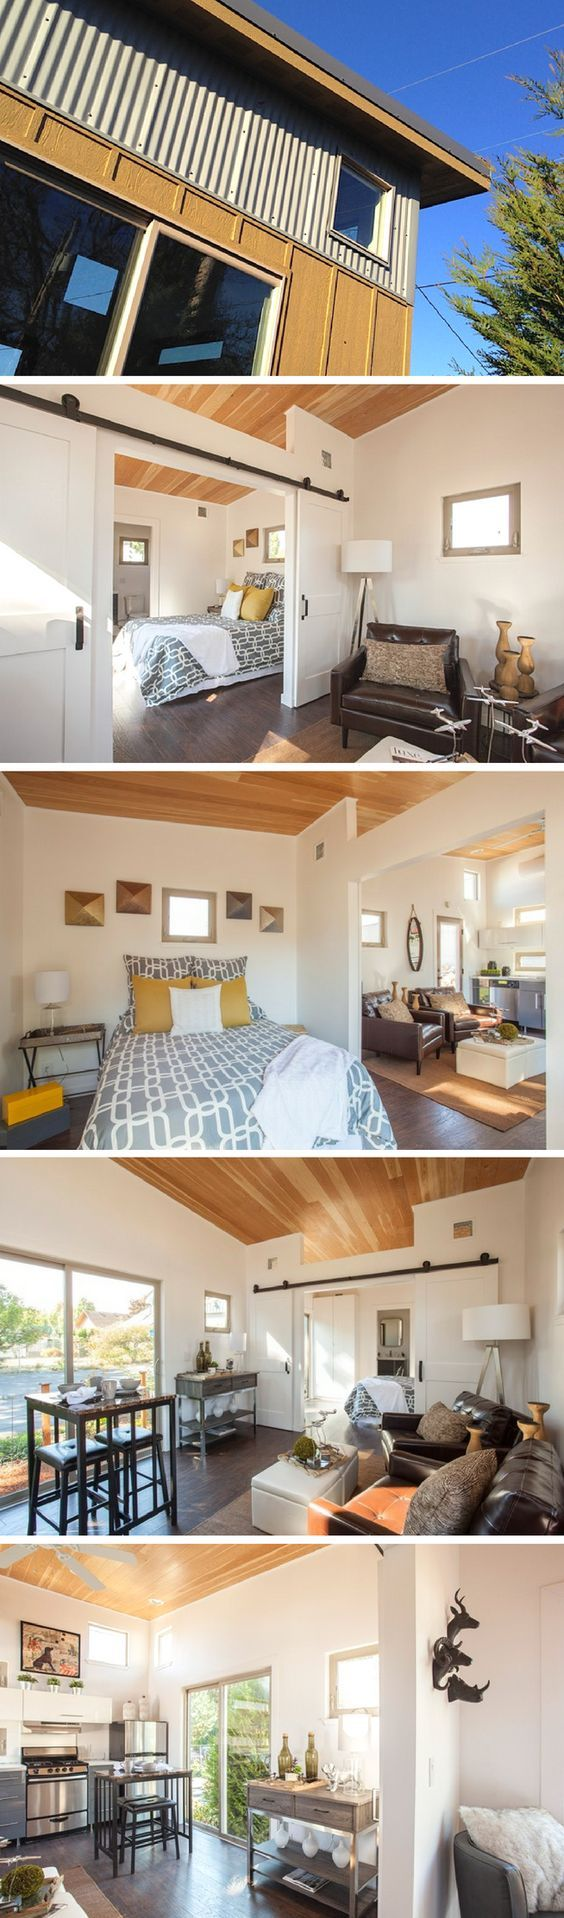 The Mini.Box: a 400 sq ft home from IdeaBox with a stunning layout.